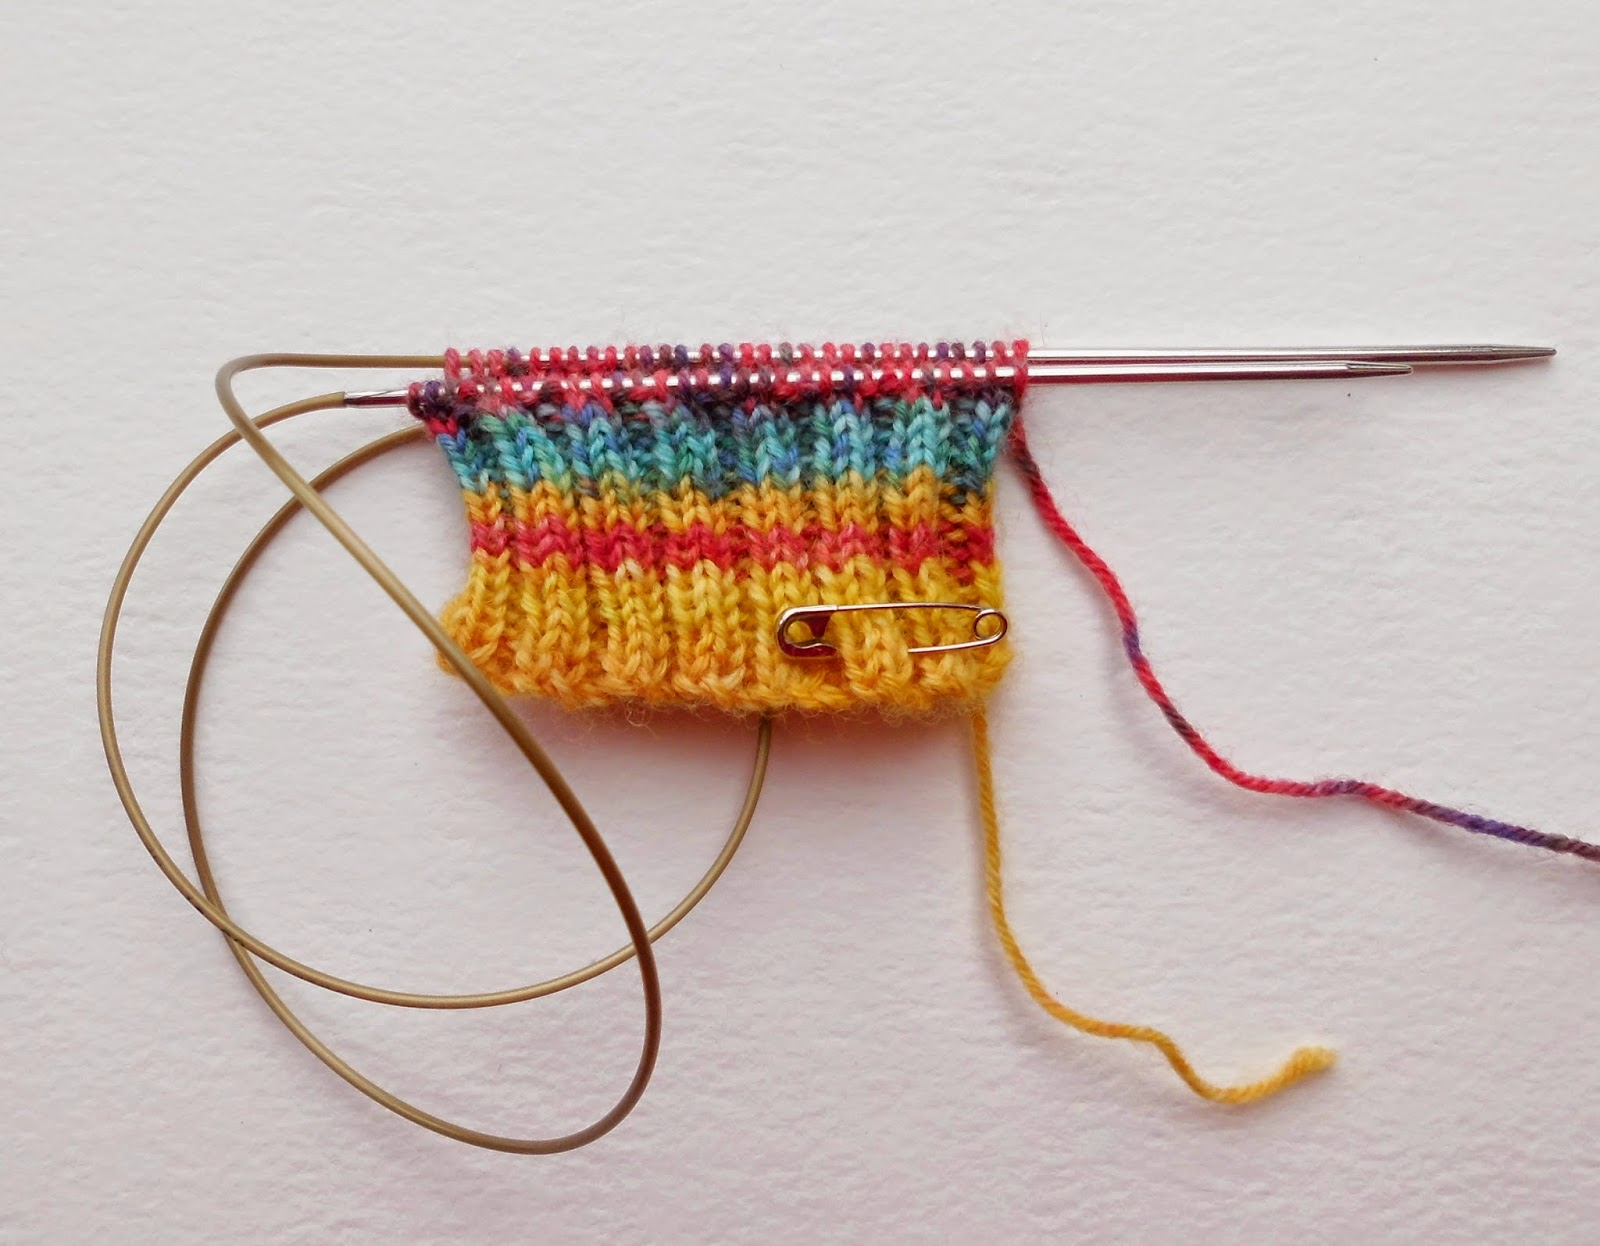 Beginner sock knitting - Winwick Mum Sockalong - knitting with magic loop